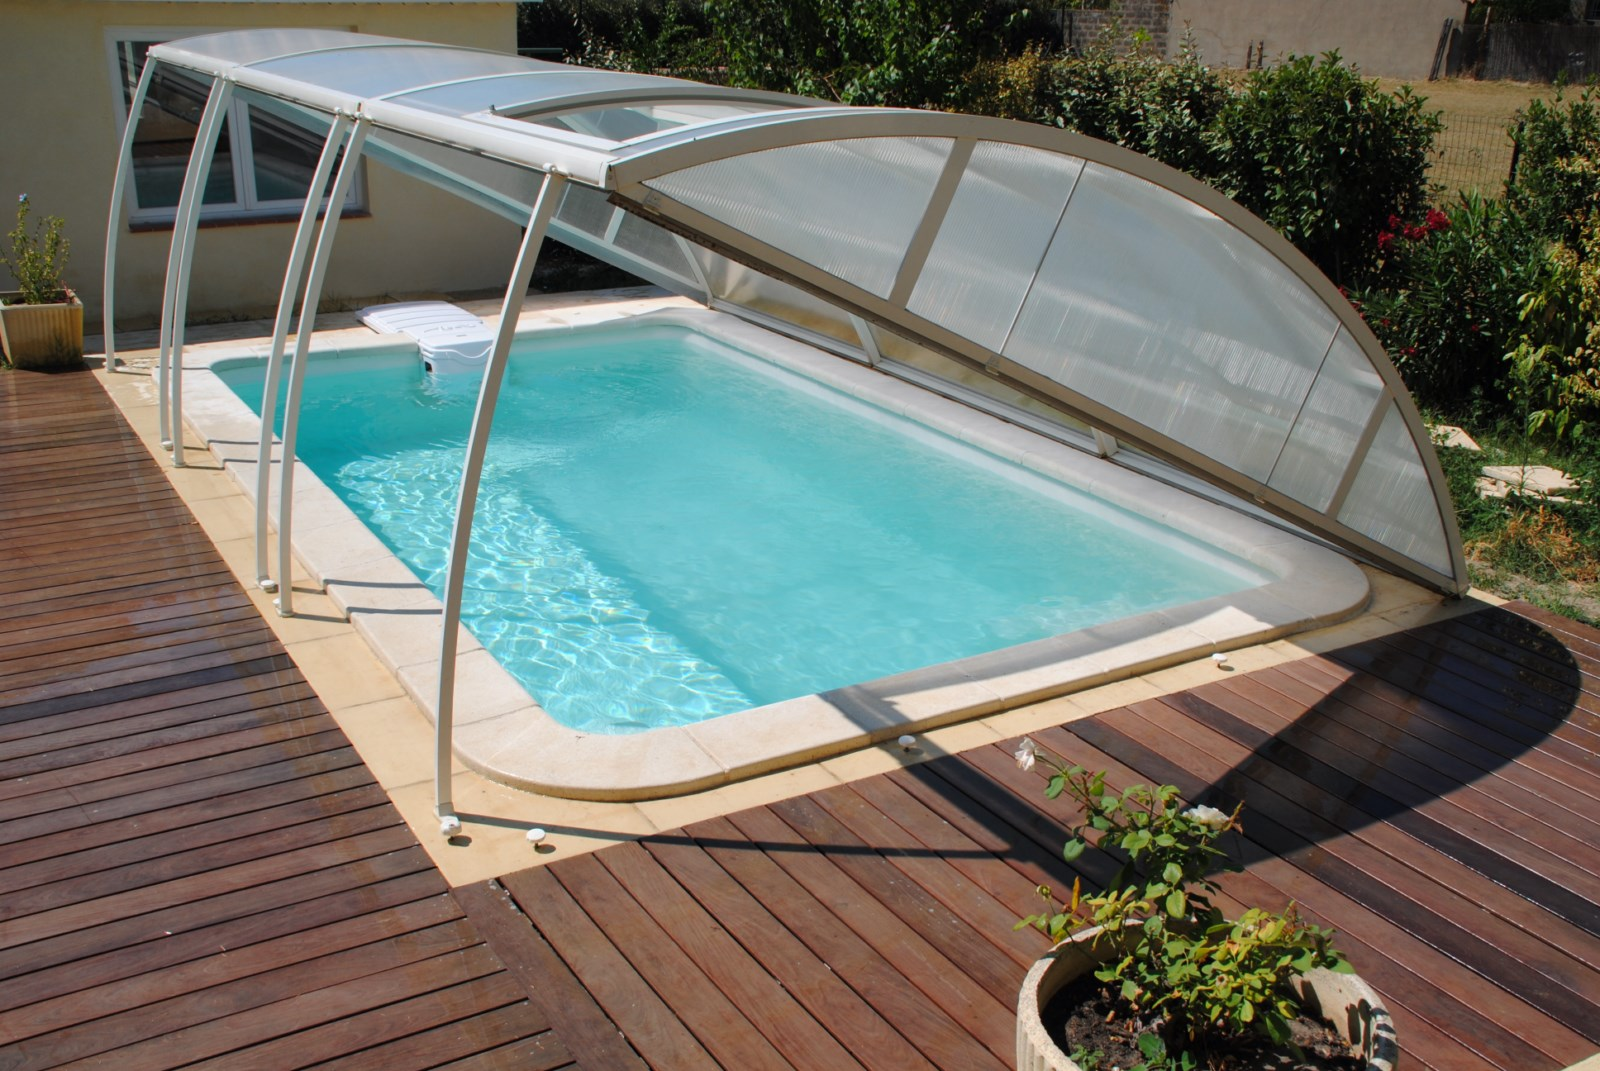 Piscine coque moins cher affordable piscine coque for Kit piscine coque